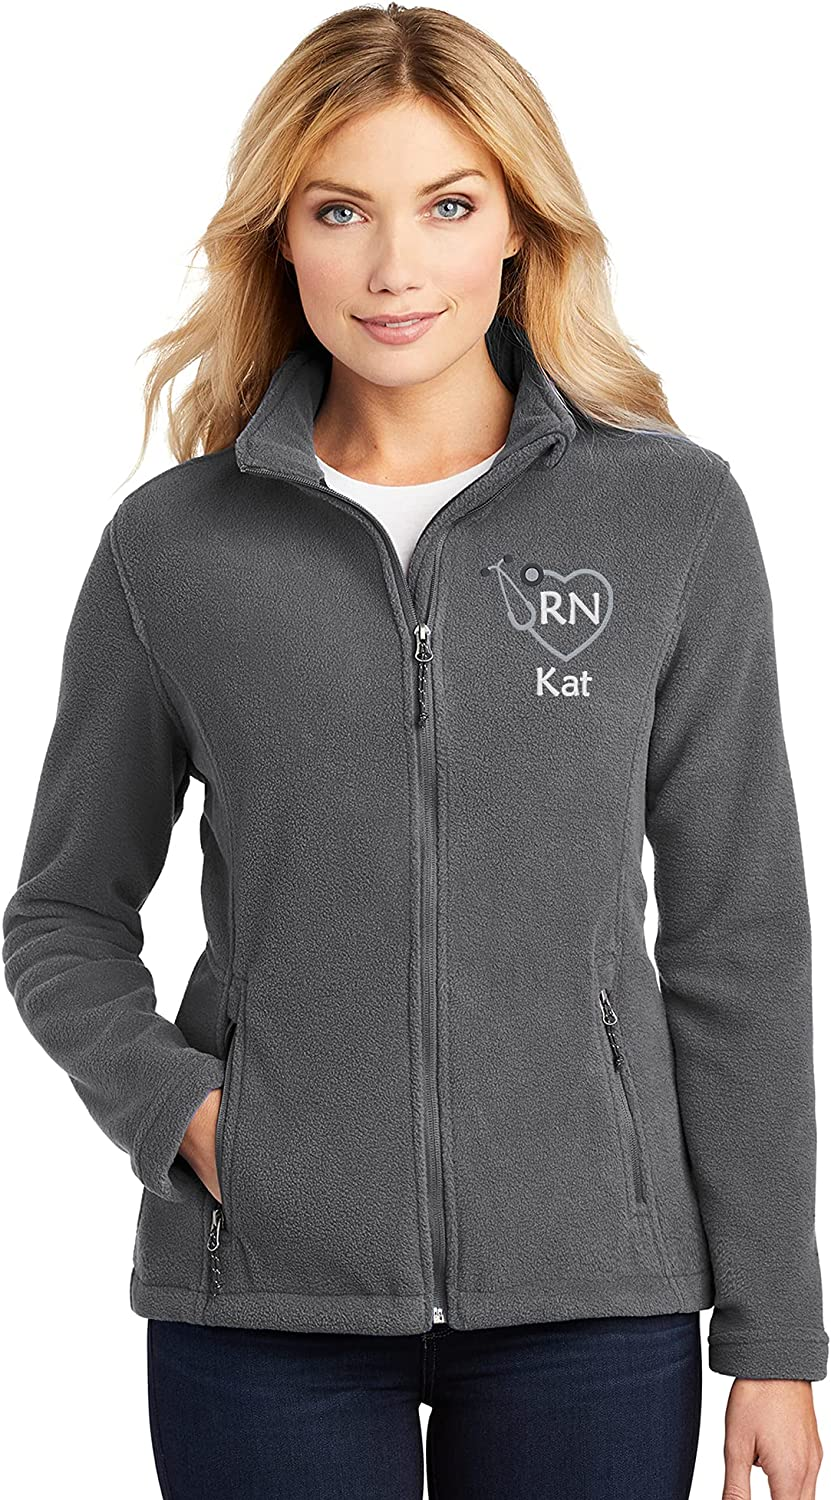 Personalized RN Fleece Jacket Max 55% OFF Spring new work one after another Nurse for Gift